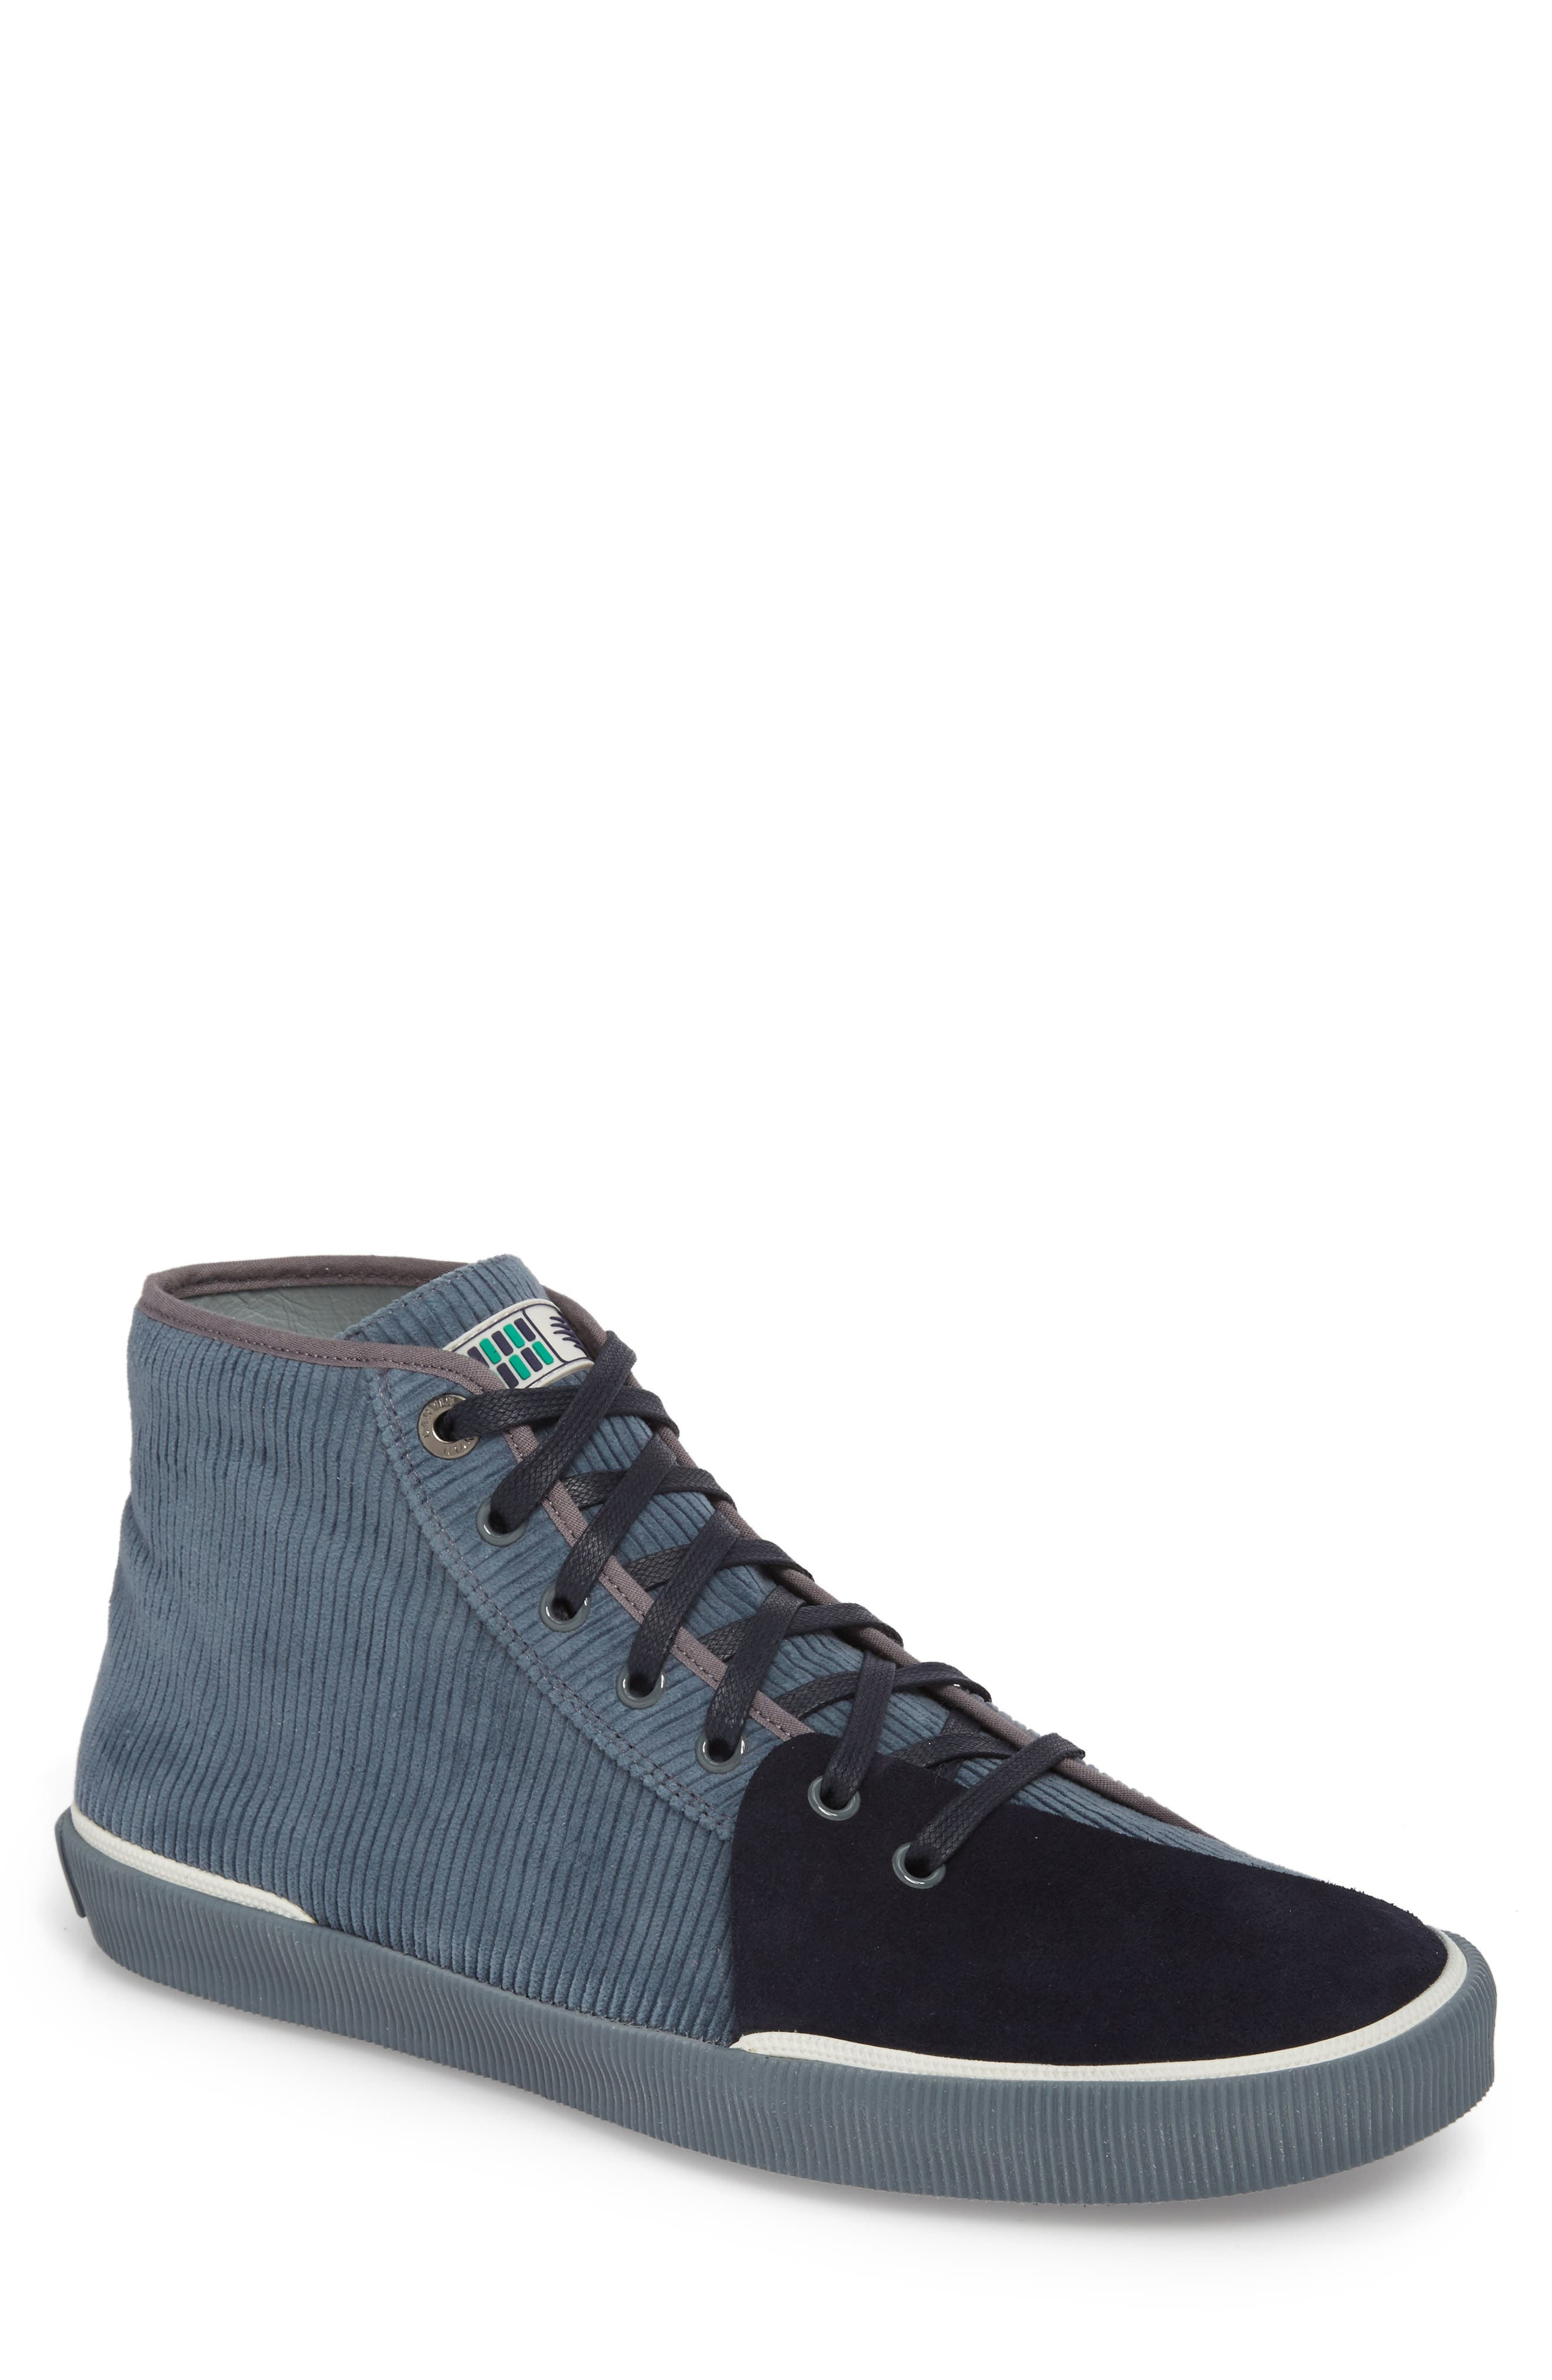 Mid Top Sneaker,                             Main thumbnail 1, color,                             Elephant Grey Suede